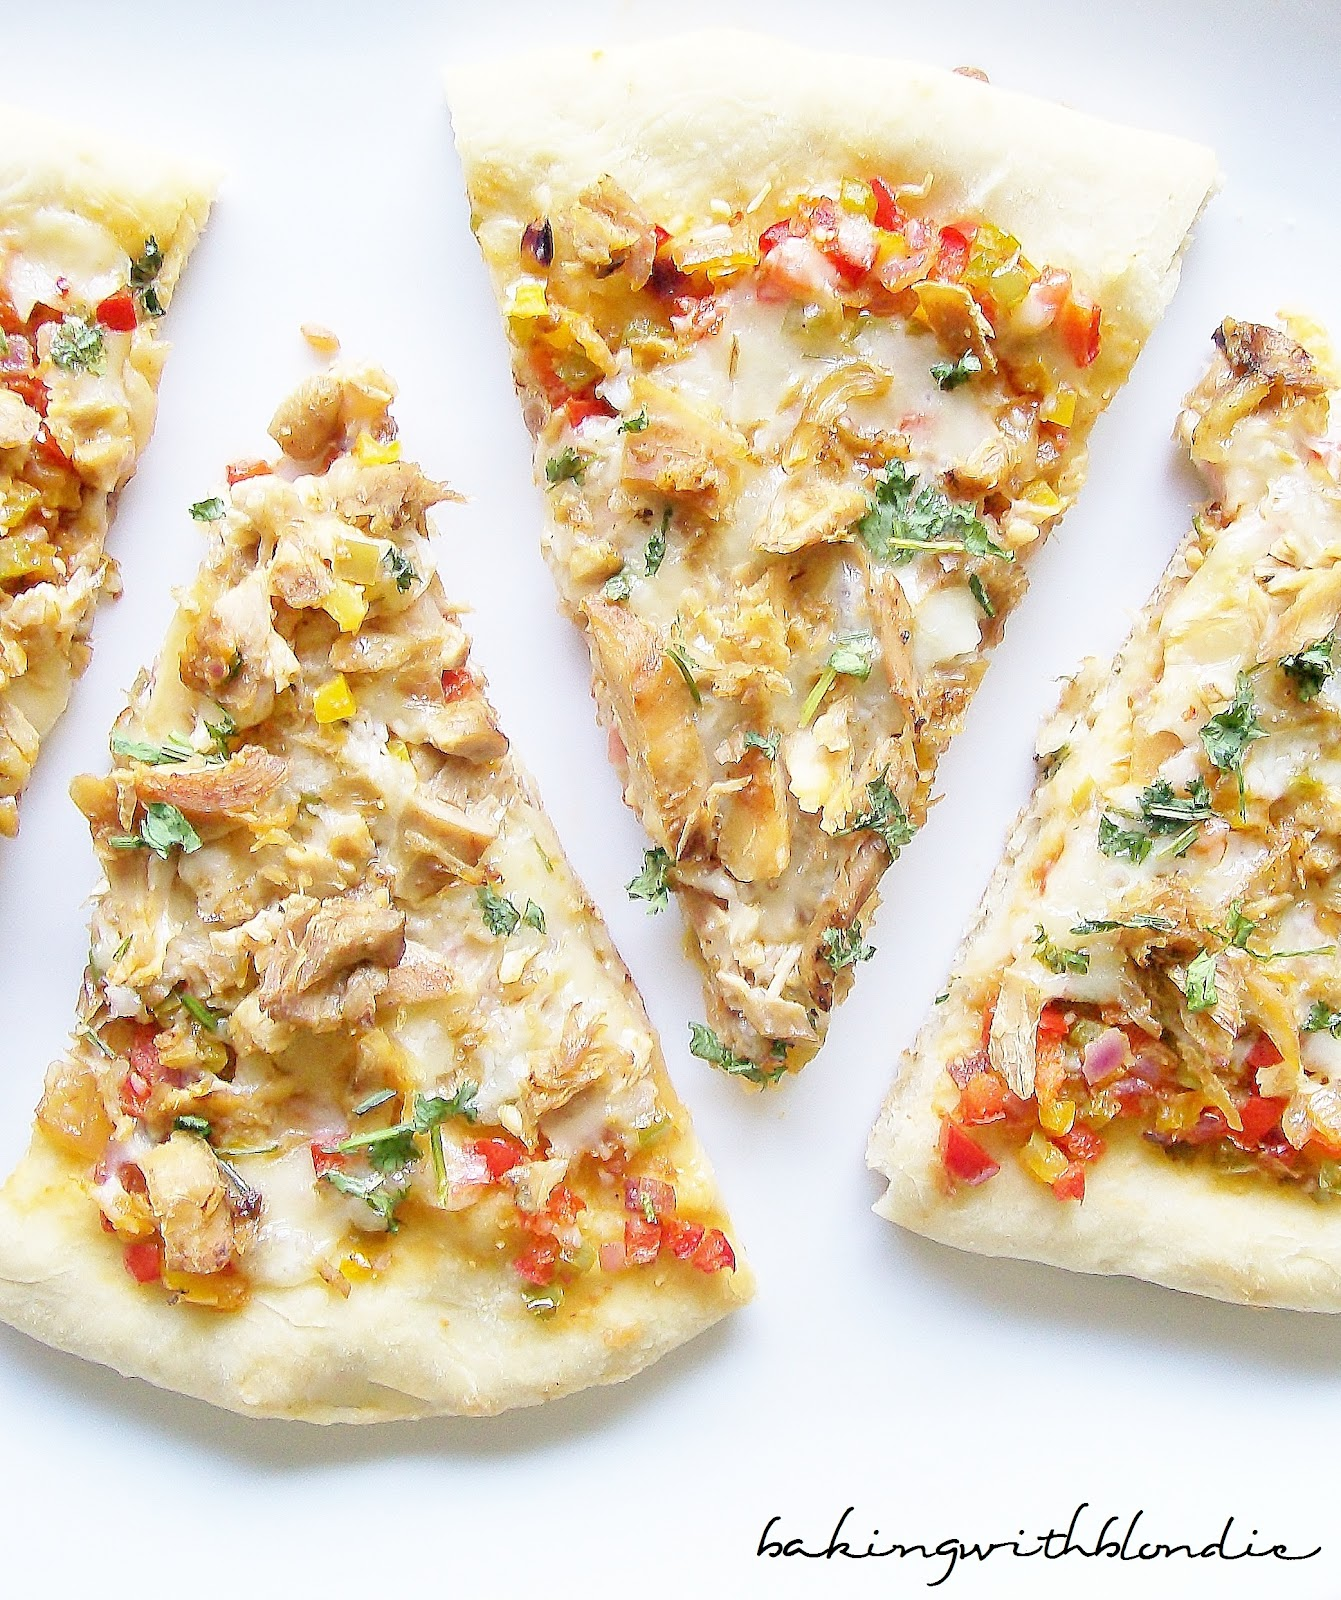 Baking with Blondie : Spicy Chicken Pizza with Pepper Jack ...